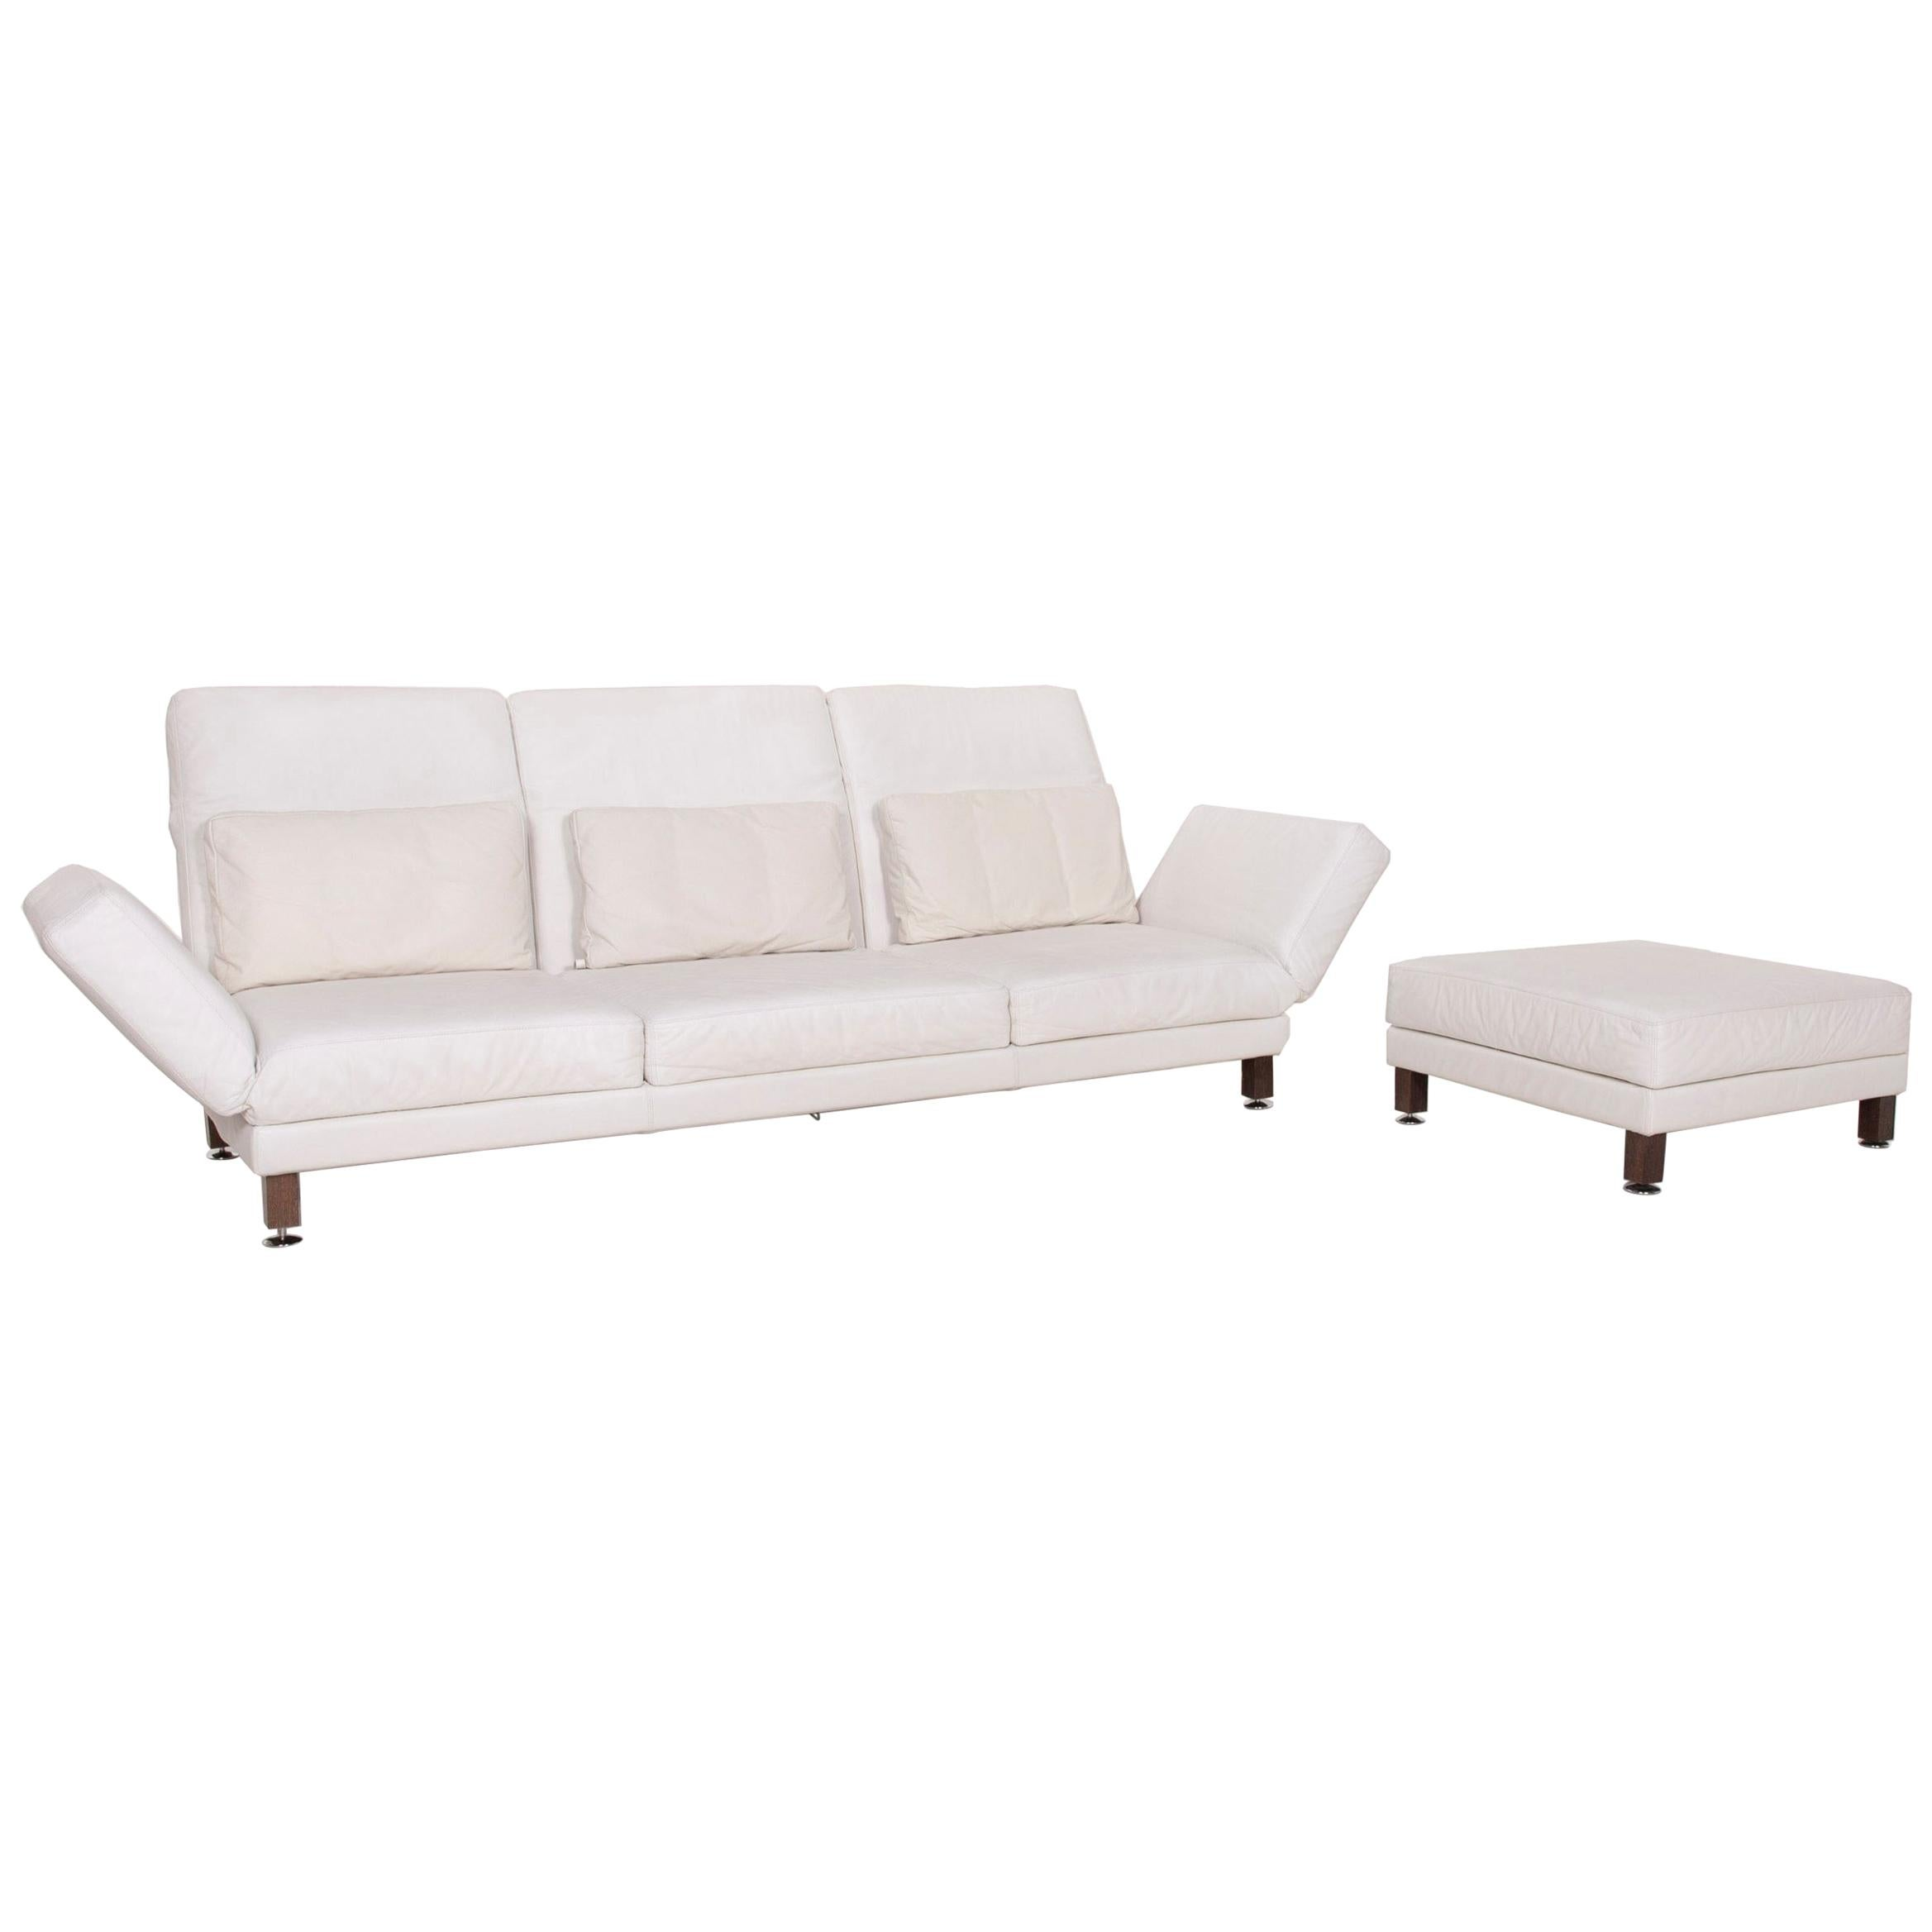 Brühl & Sippold Moule Leather Sofa Set White Three-Seat Relax Function Stool